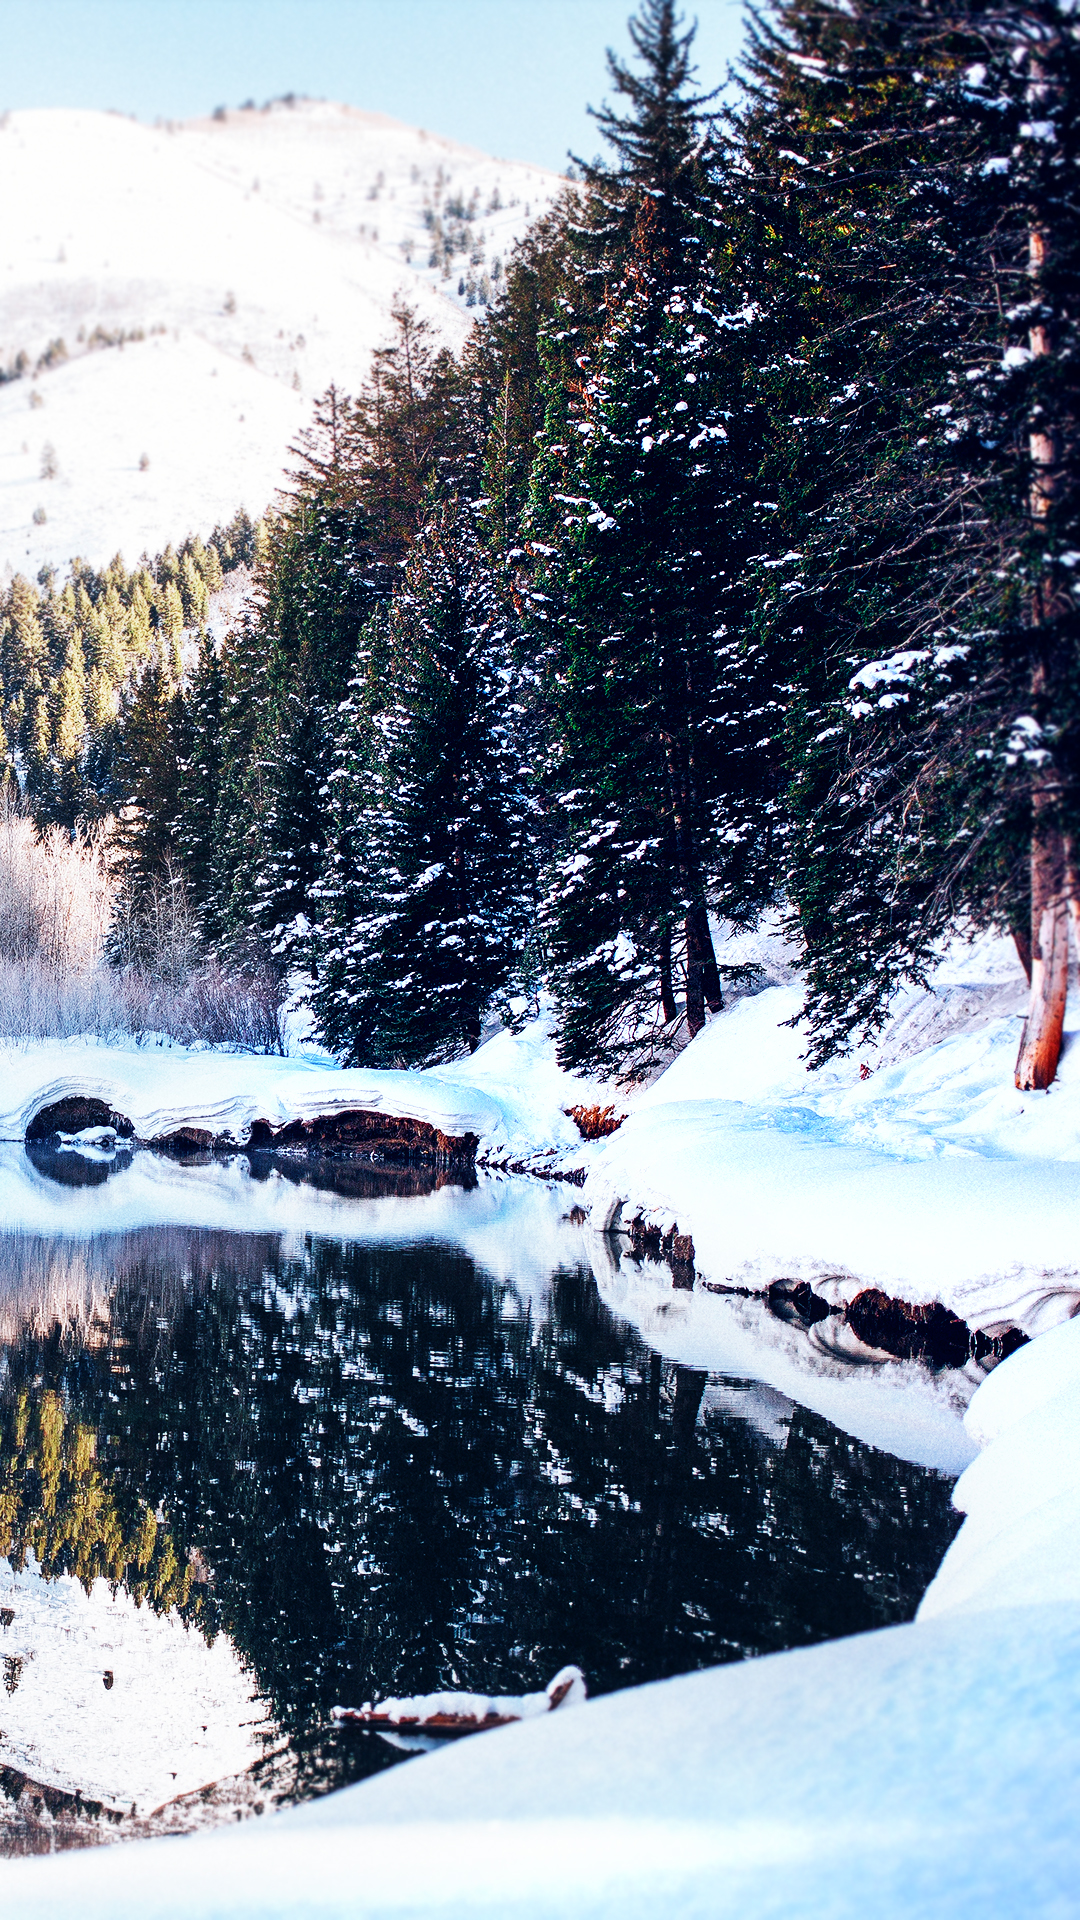 Winter lake 1080 x 1920 hd wallpaper - Free winter wallpaper for phone ...